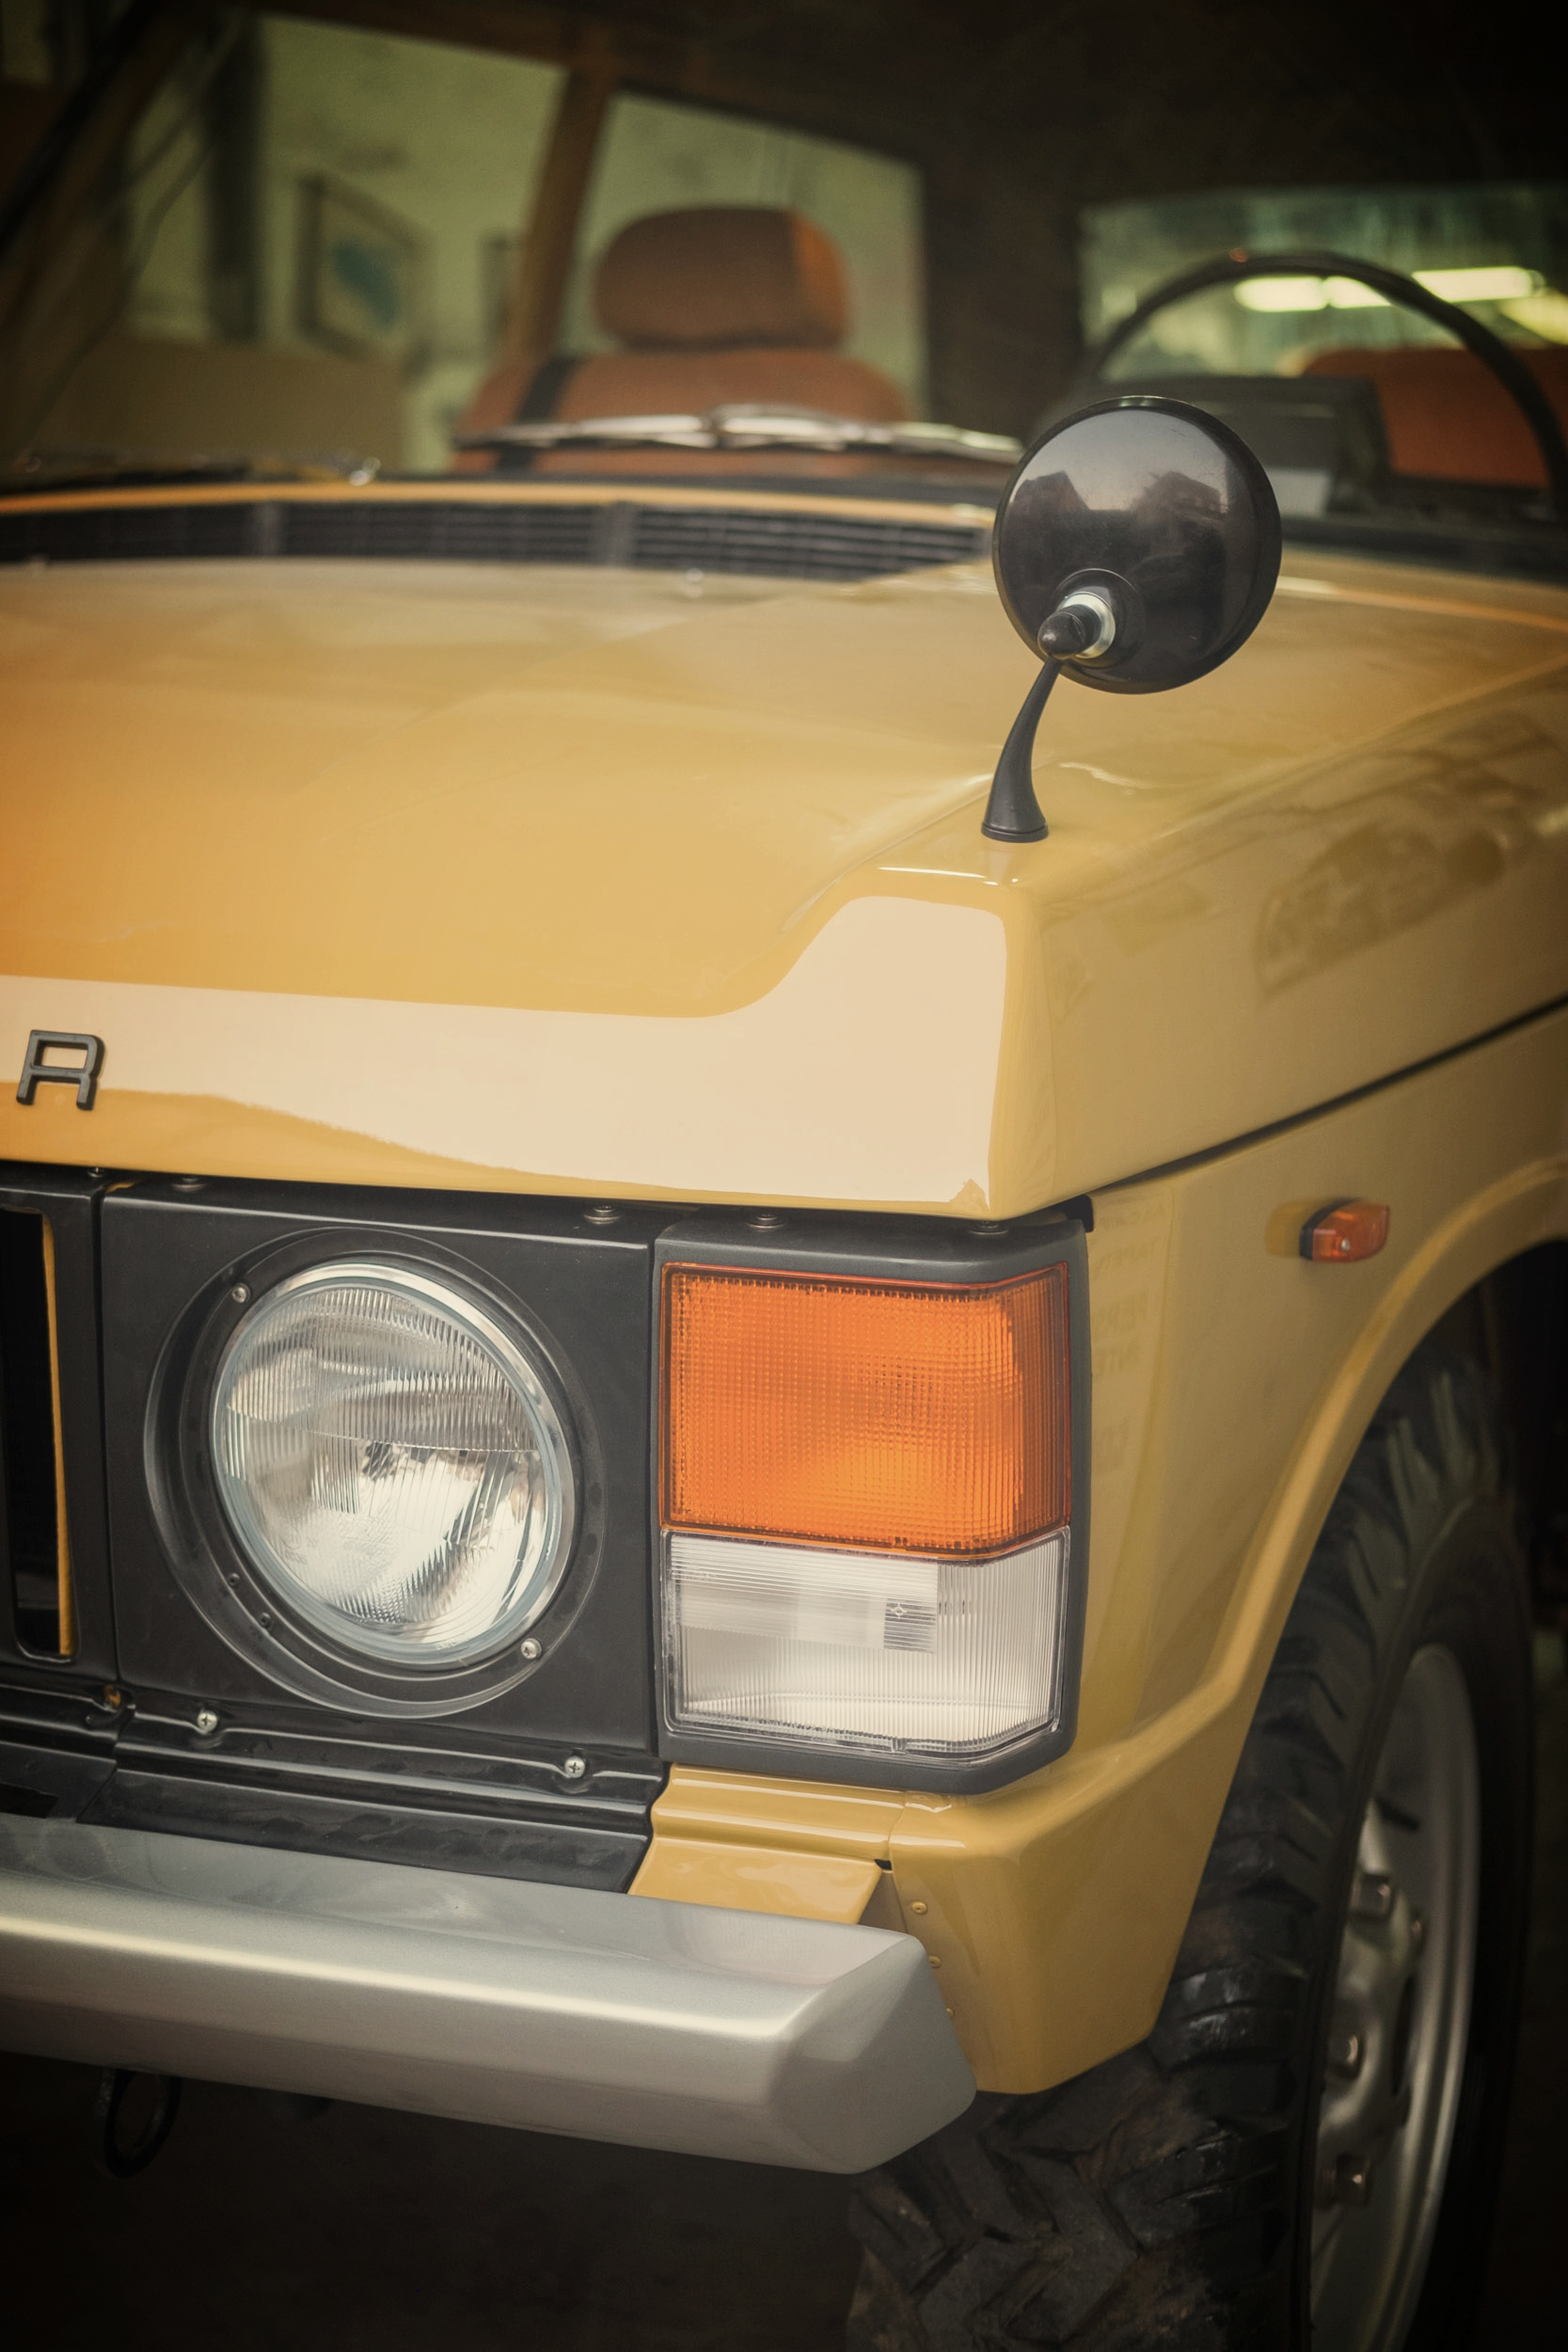 Bahama Gold 1973 Range Rover Classic in all its fully restored glory.